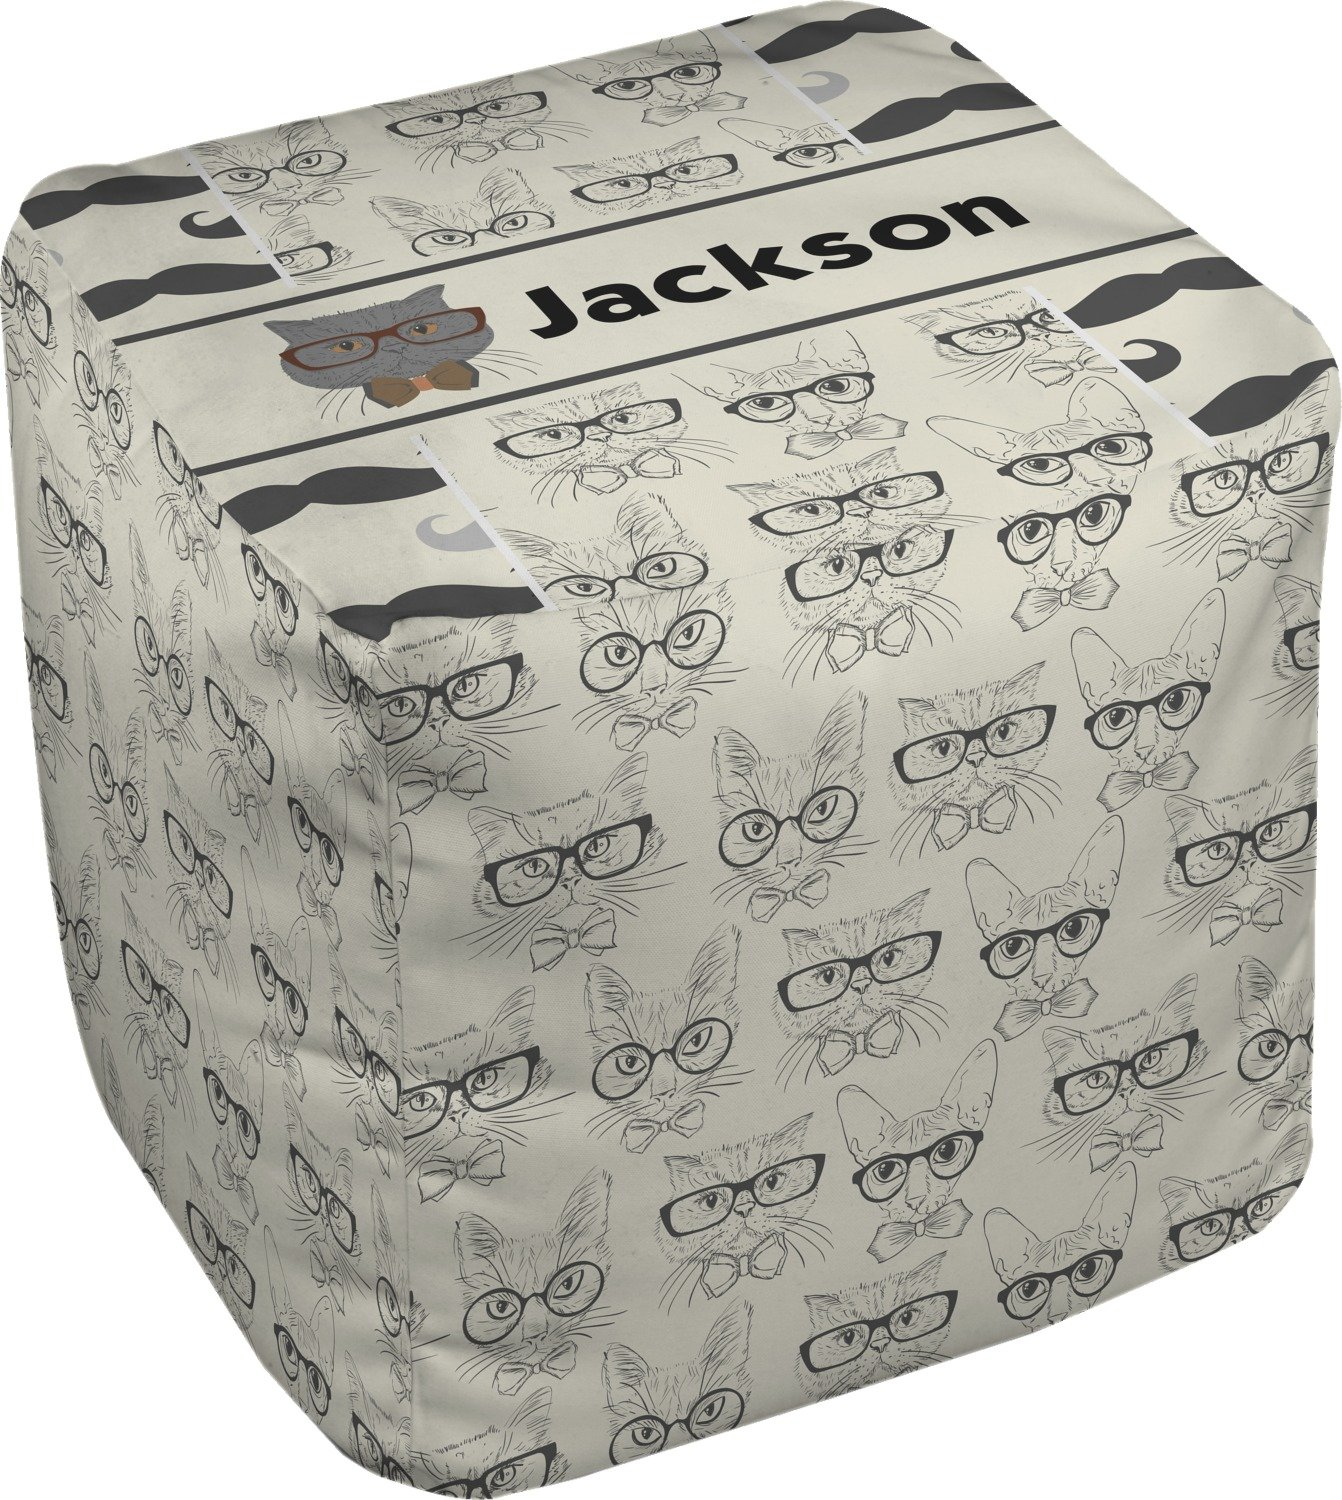 RNK Shops Hipster Cats & Mustache Cube Pouf Ottoman - 13'' (Personalized)